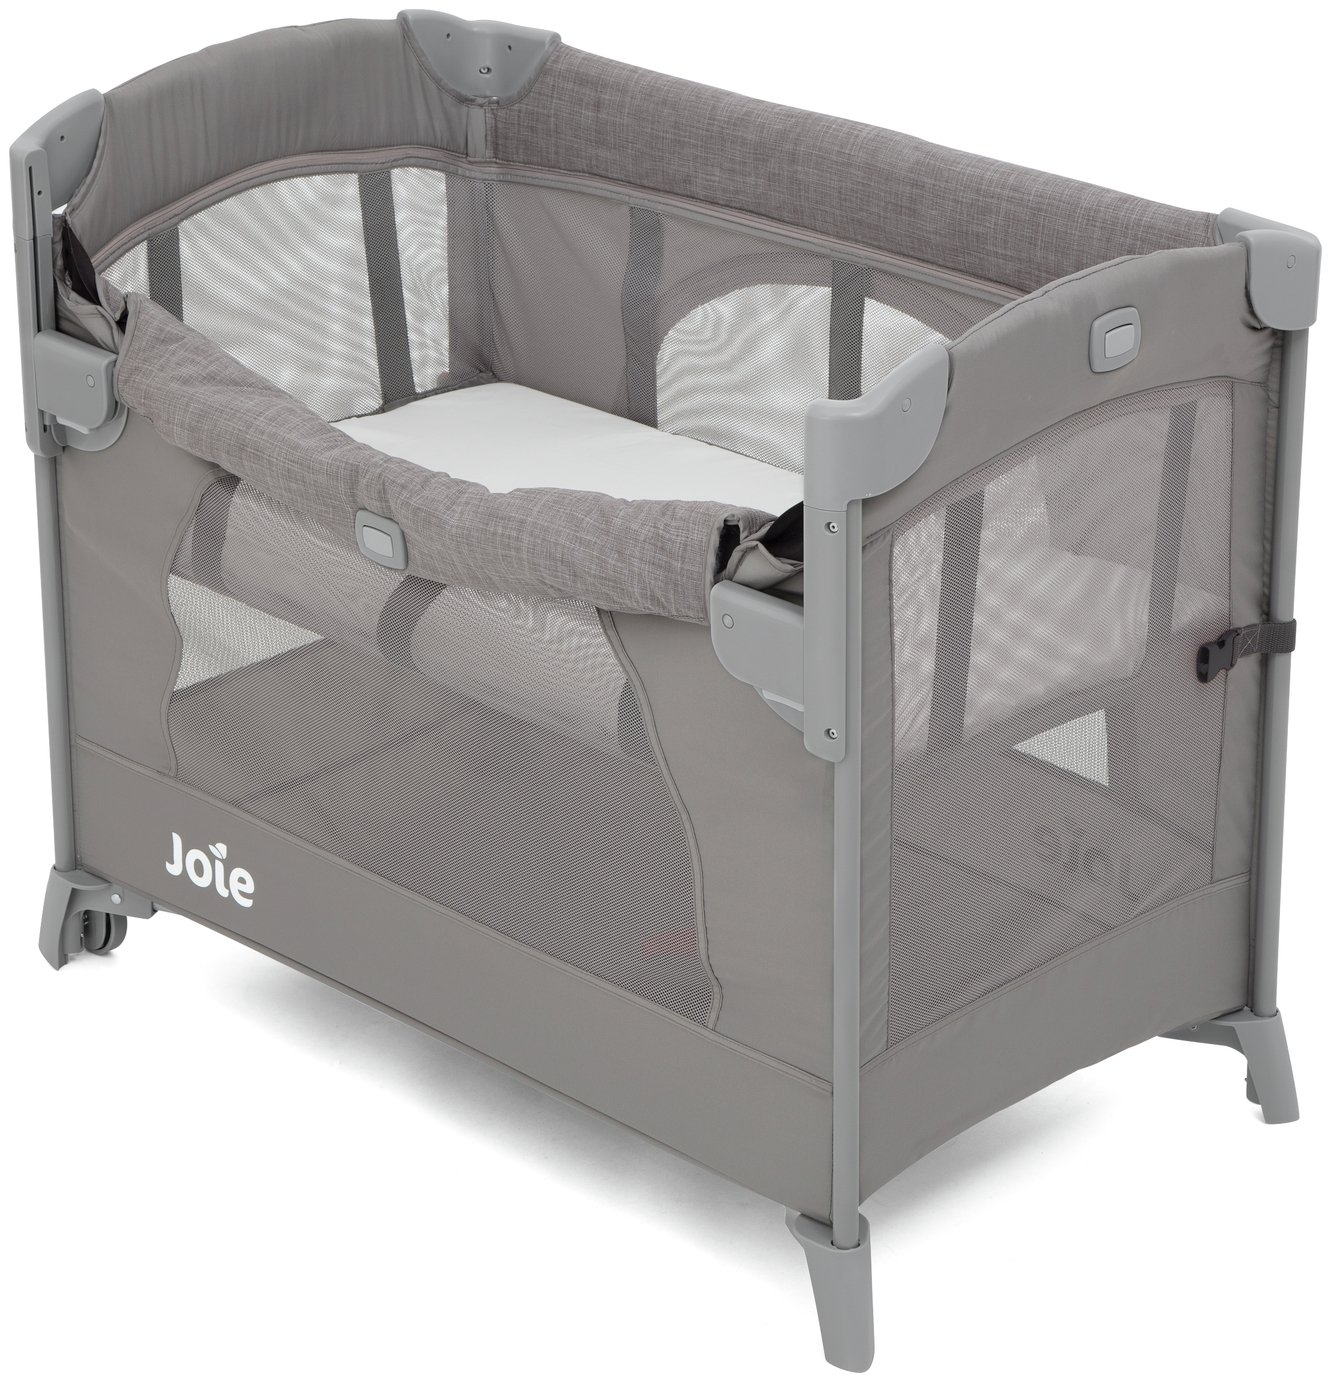 Joie Kubbie Sleep Compact Travel Cot from Joie